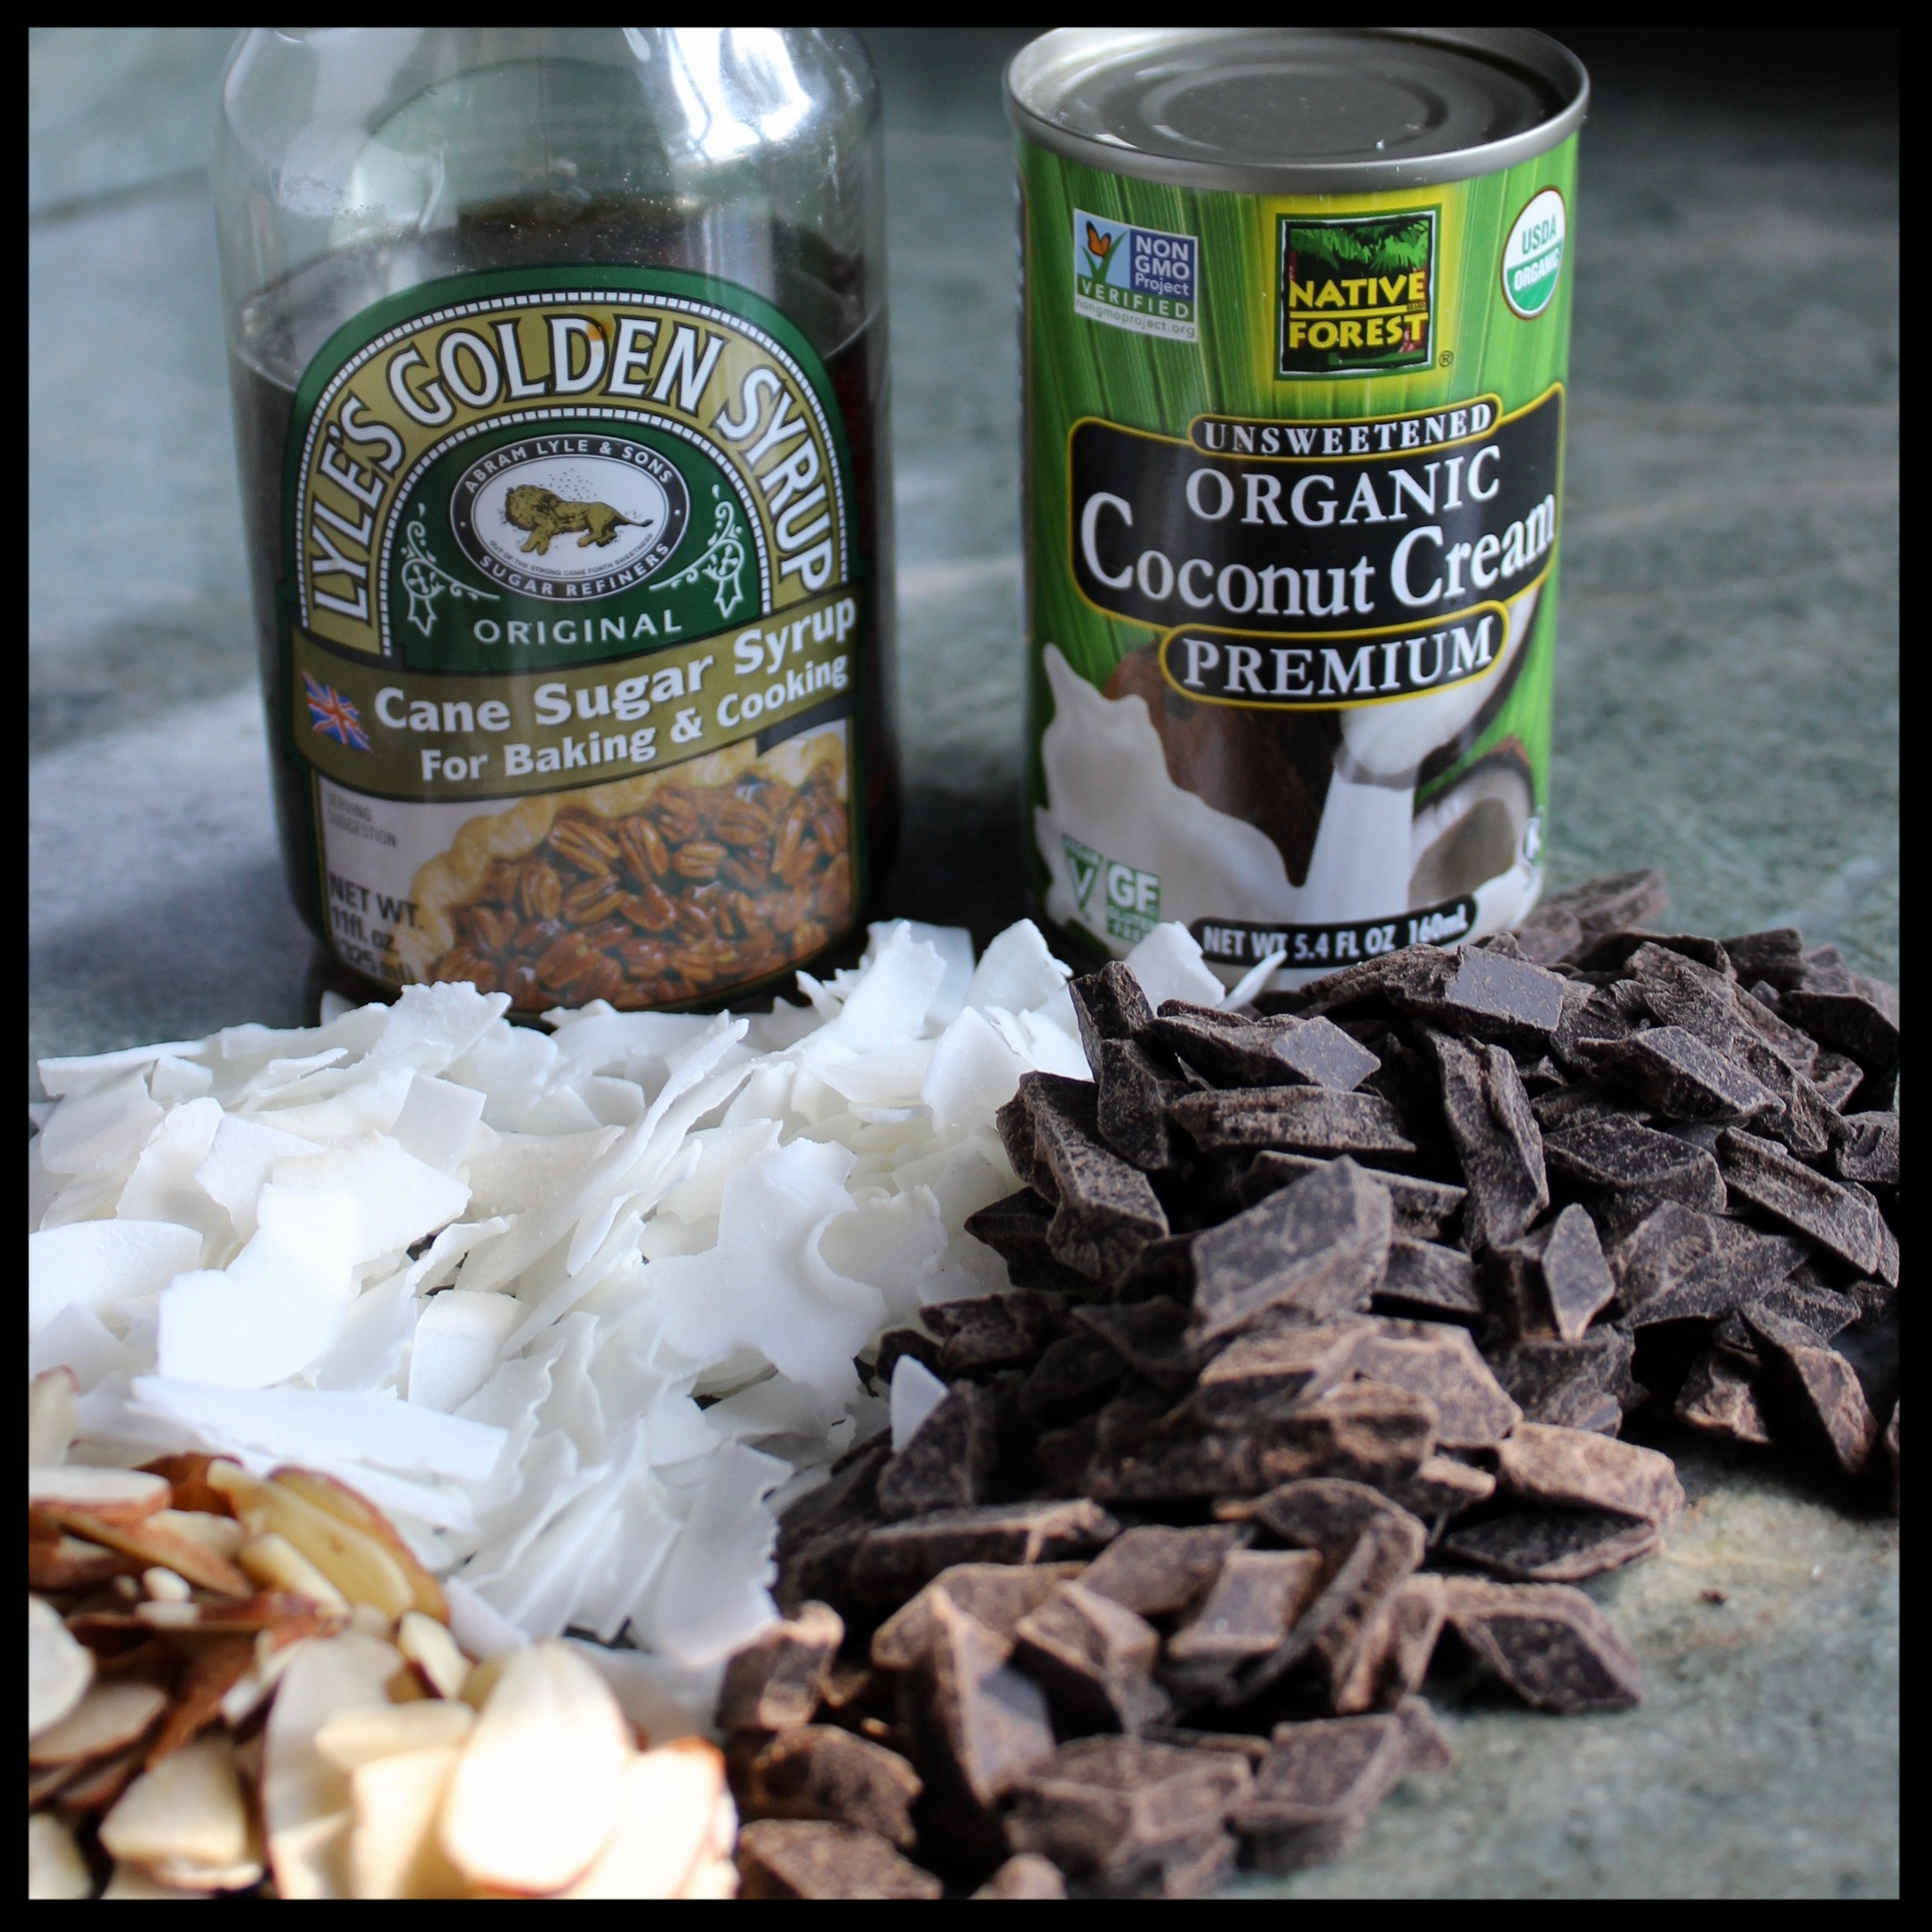 INGREDIENTS:   -  12 ounce bag of semi-sweet dark chocolate  -  3 cups unsweetened untoasted coconut  -  1/2 tsp salt  -  4 TB (2oz)   Lyles Golden Syrup  (or light corn, maple or date syrup)  -  6 TB Coconut Cream   -  1 tsp vanilla extract  -  1 TB key lime or lime zest (optional)  -  Slivered toasted almonds for garnish